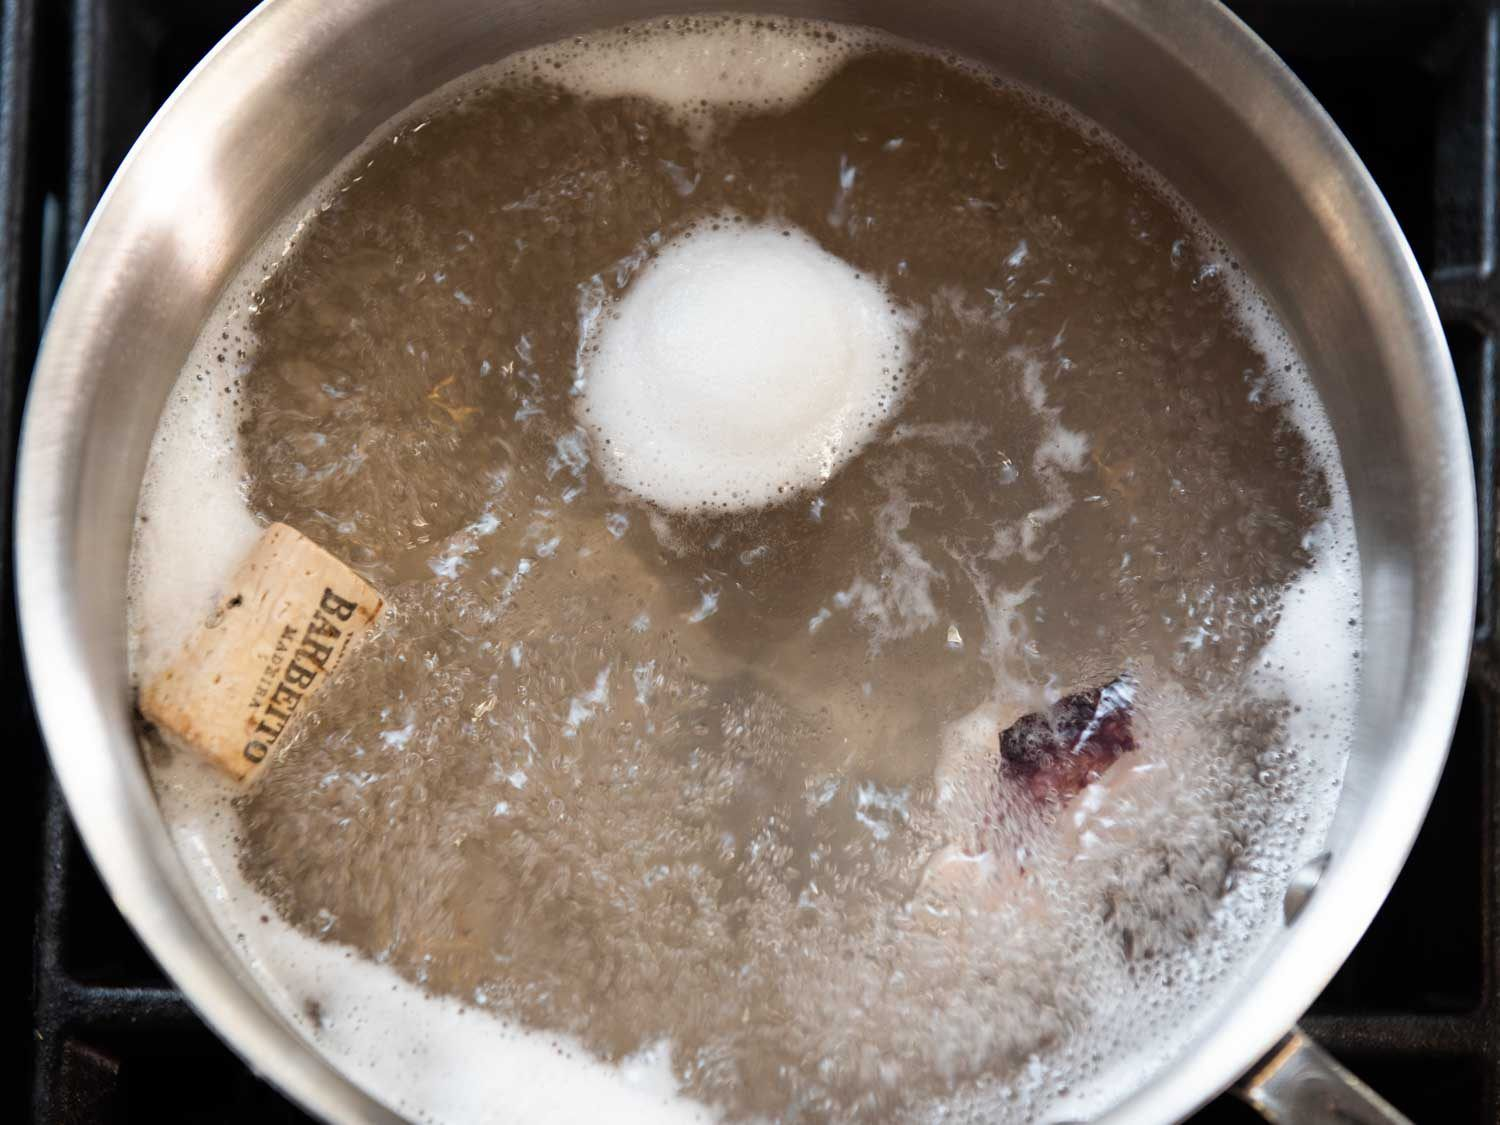 Looking down into a boiling pot on the stovetop, with a piece of octopus and a cork in the water.